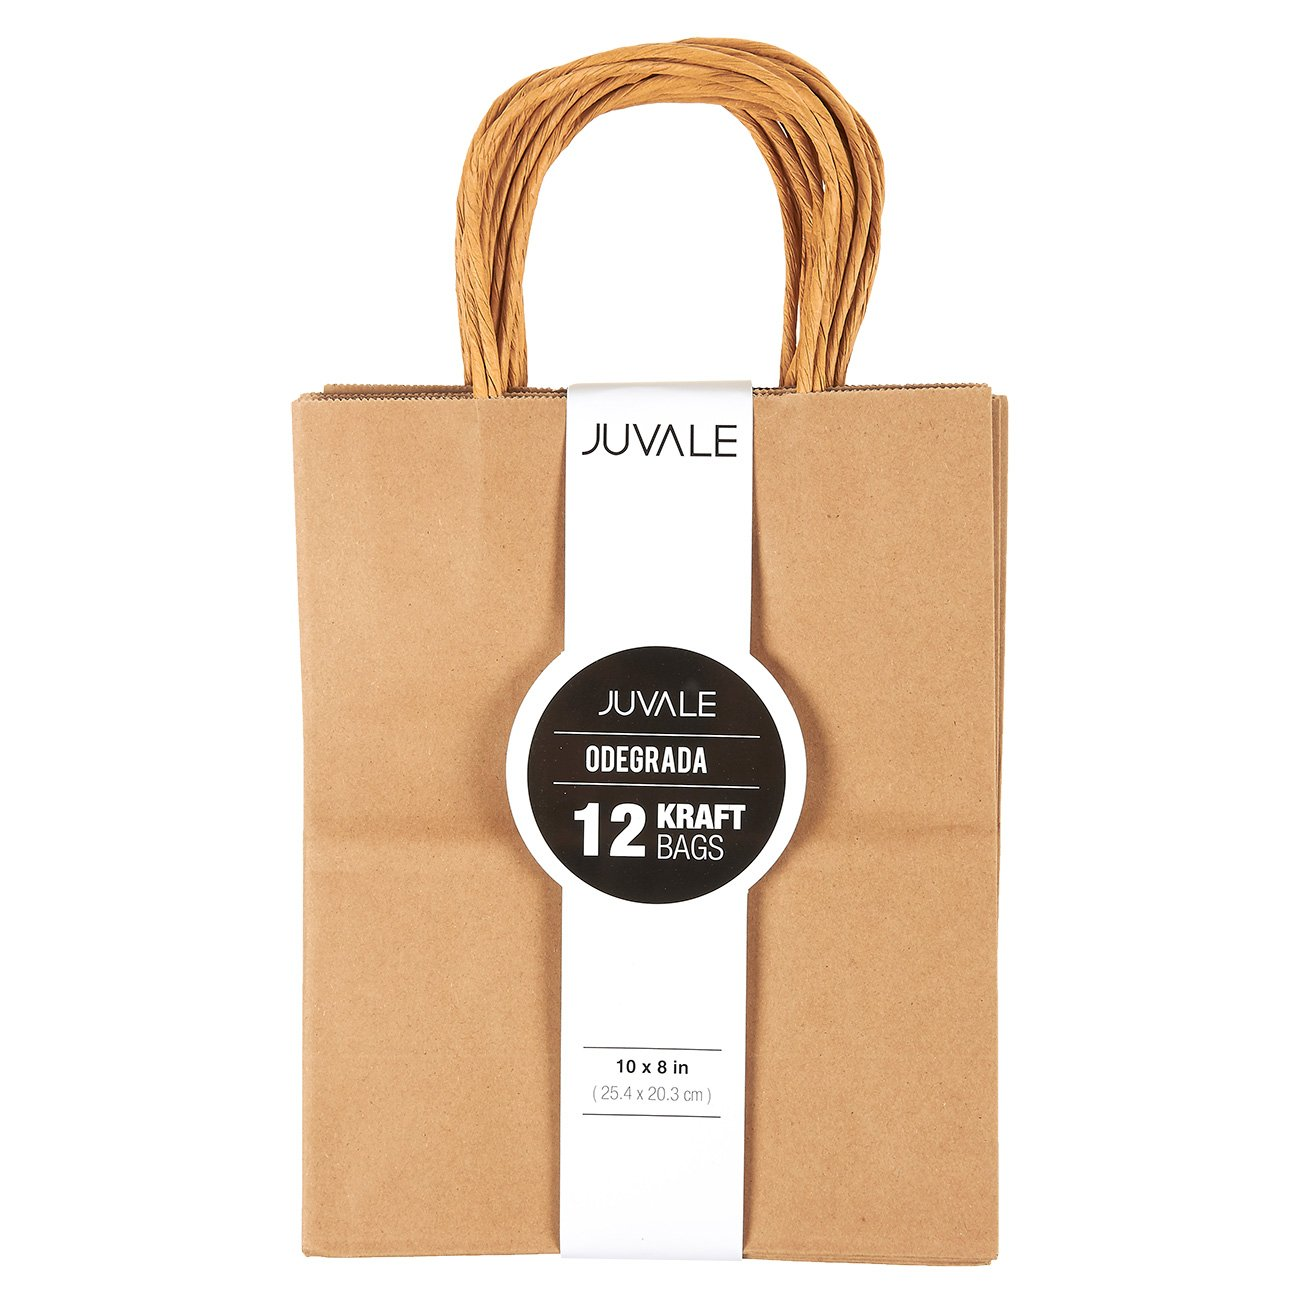 eaf94a194ee61 Top 25 Best Gift Bags for All Occasions 2017-2018 on Flipboard by ...